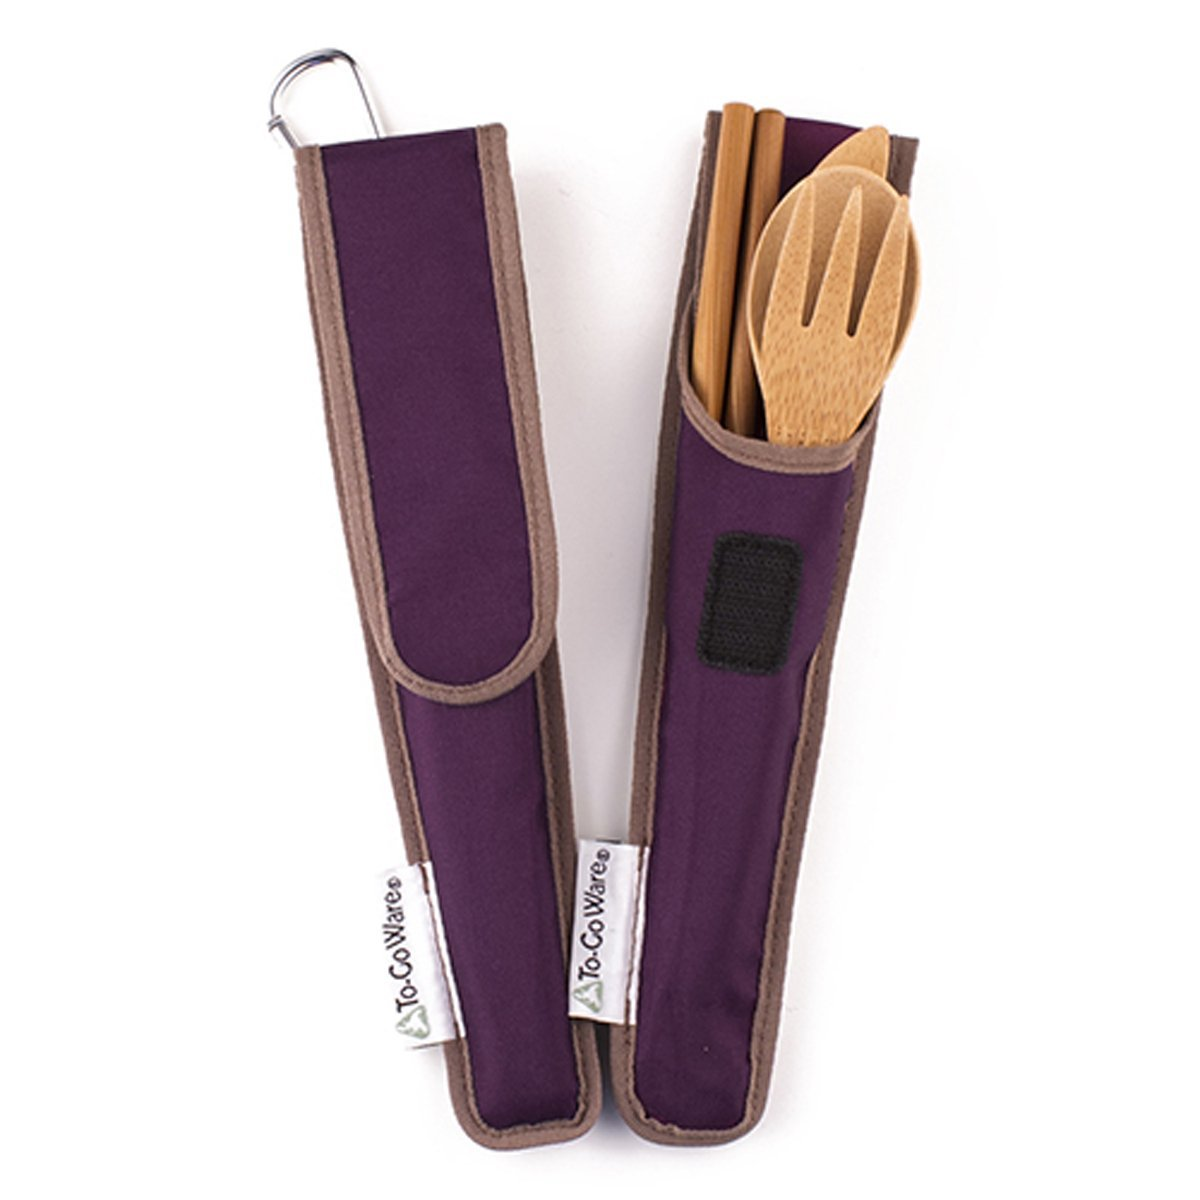 To-Go Ware bamboo utensils are portable and earth-friendly.